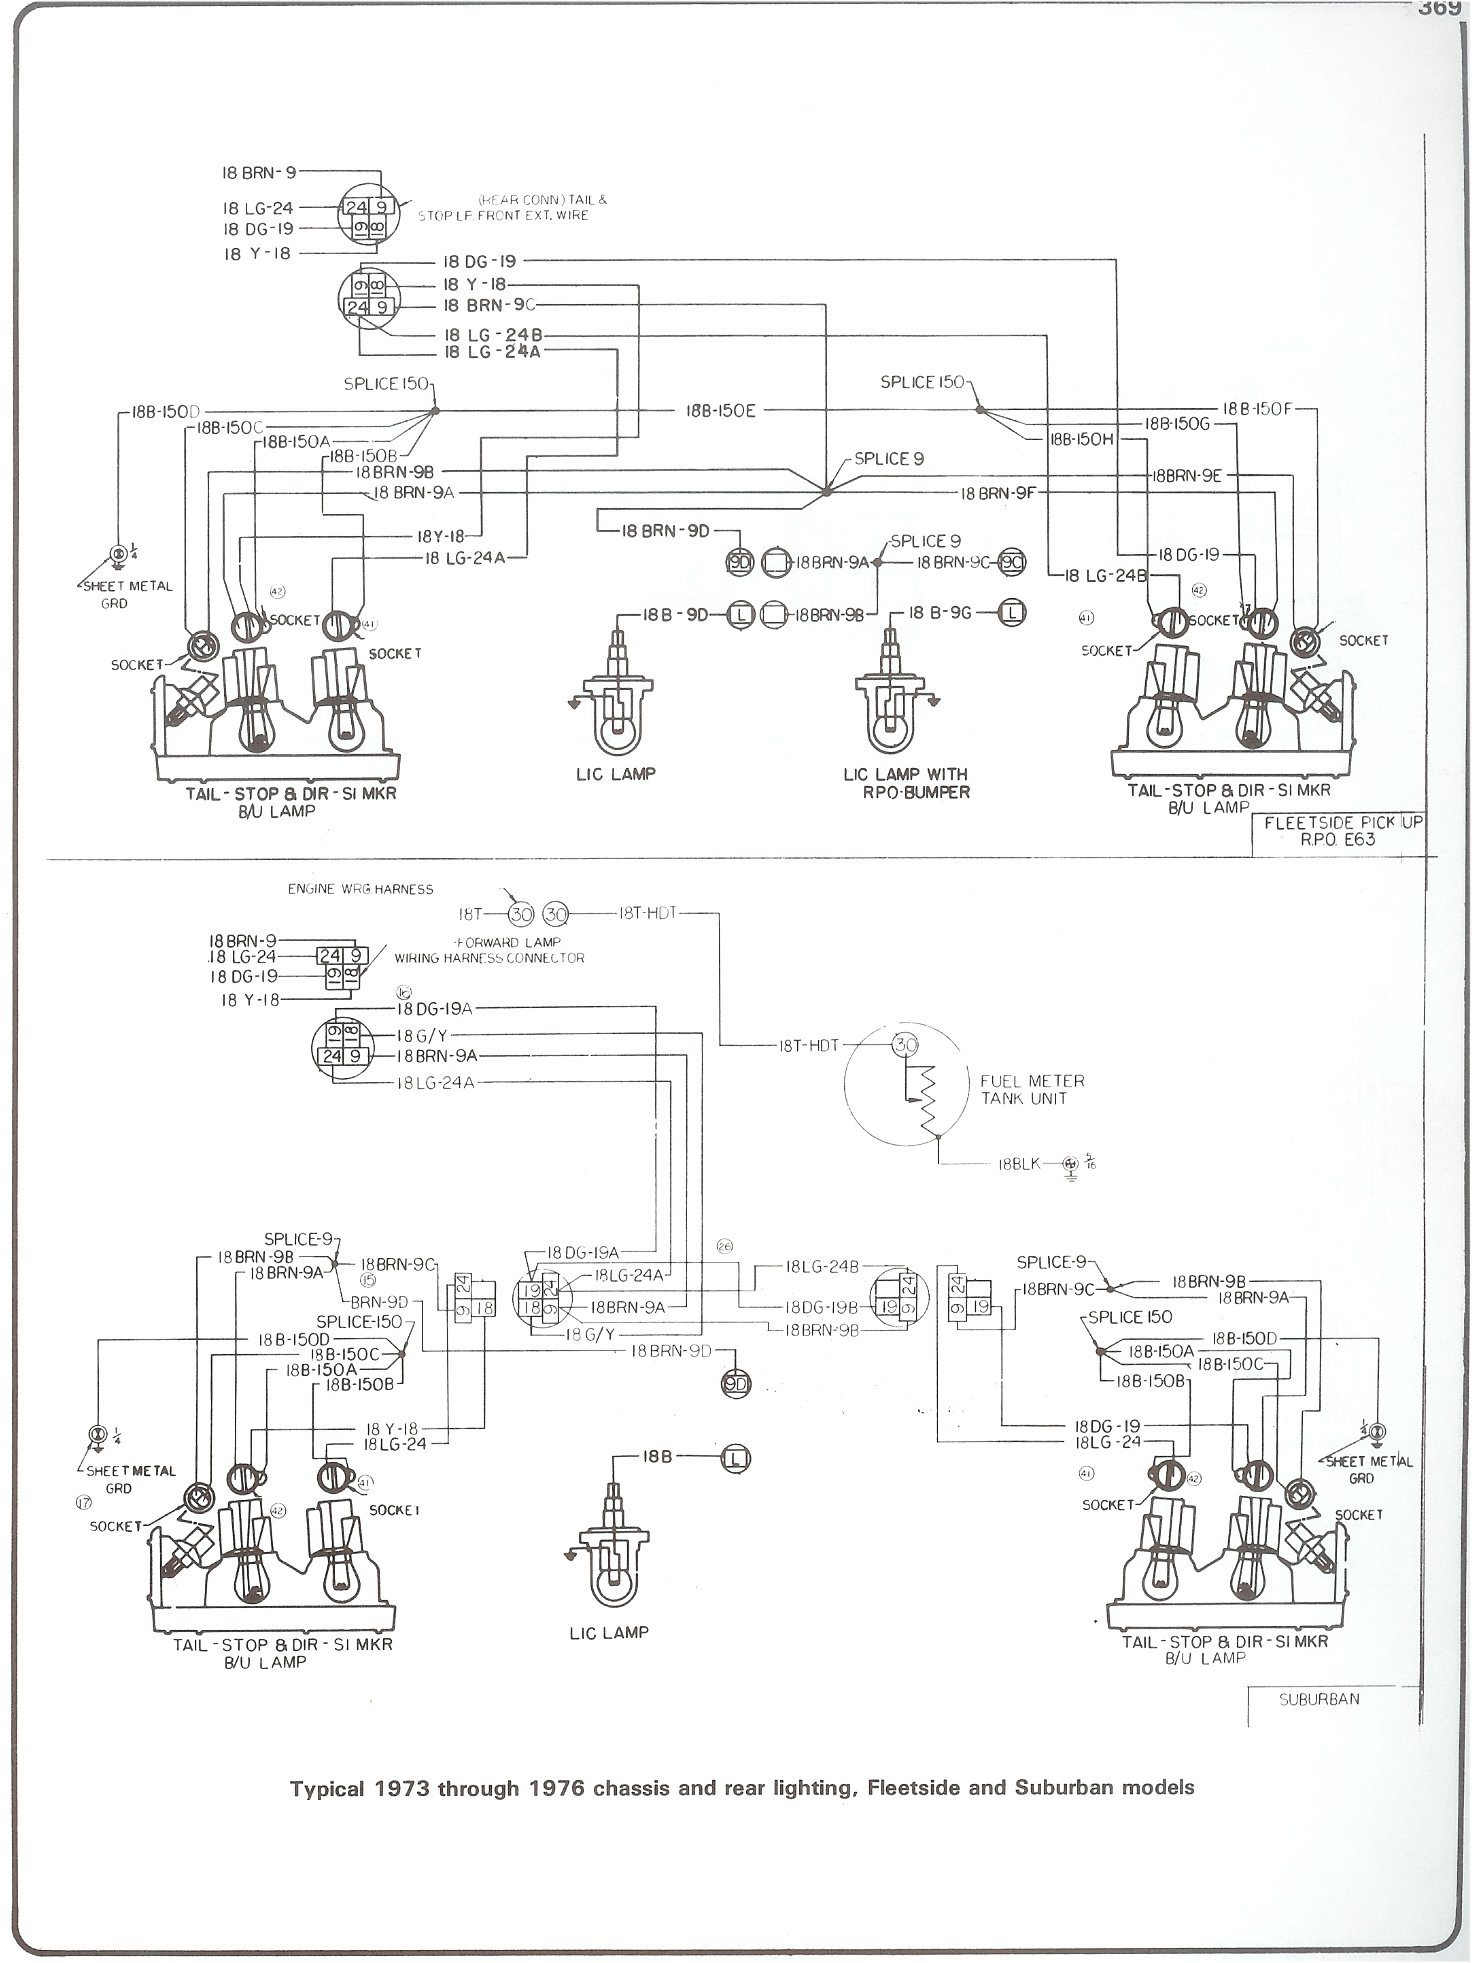 73 76_chass_rr_light_fleet_burb complete 73 87 wiring diagrams gmc truck wiring diagrams at webbmarketing.co